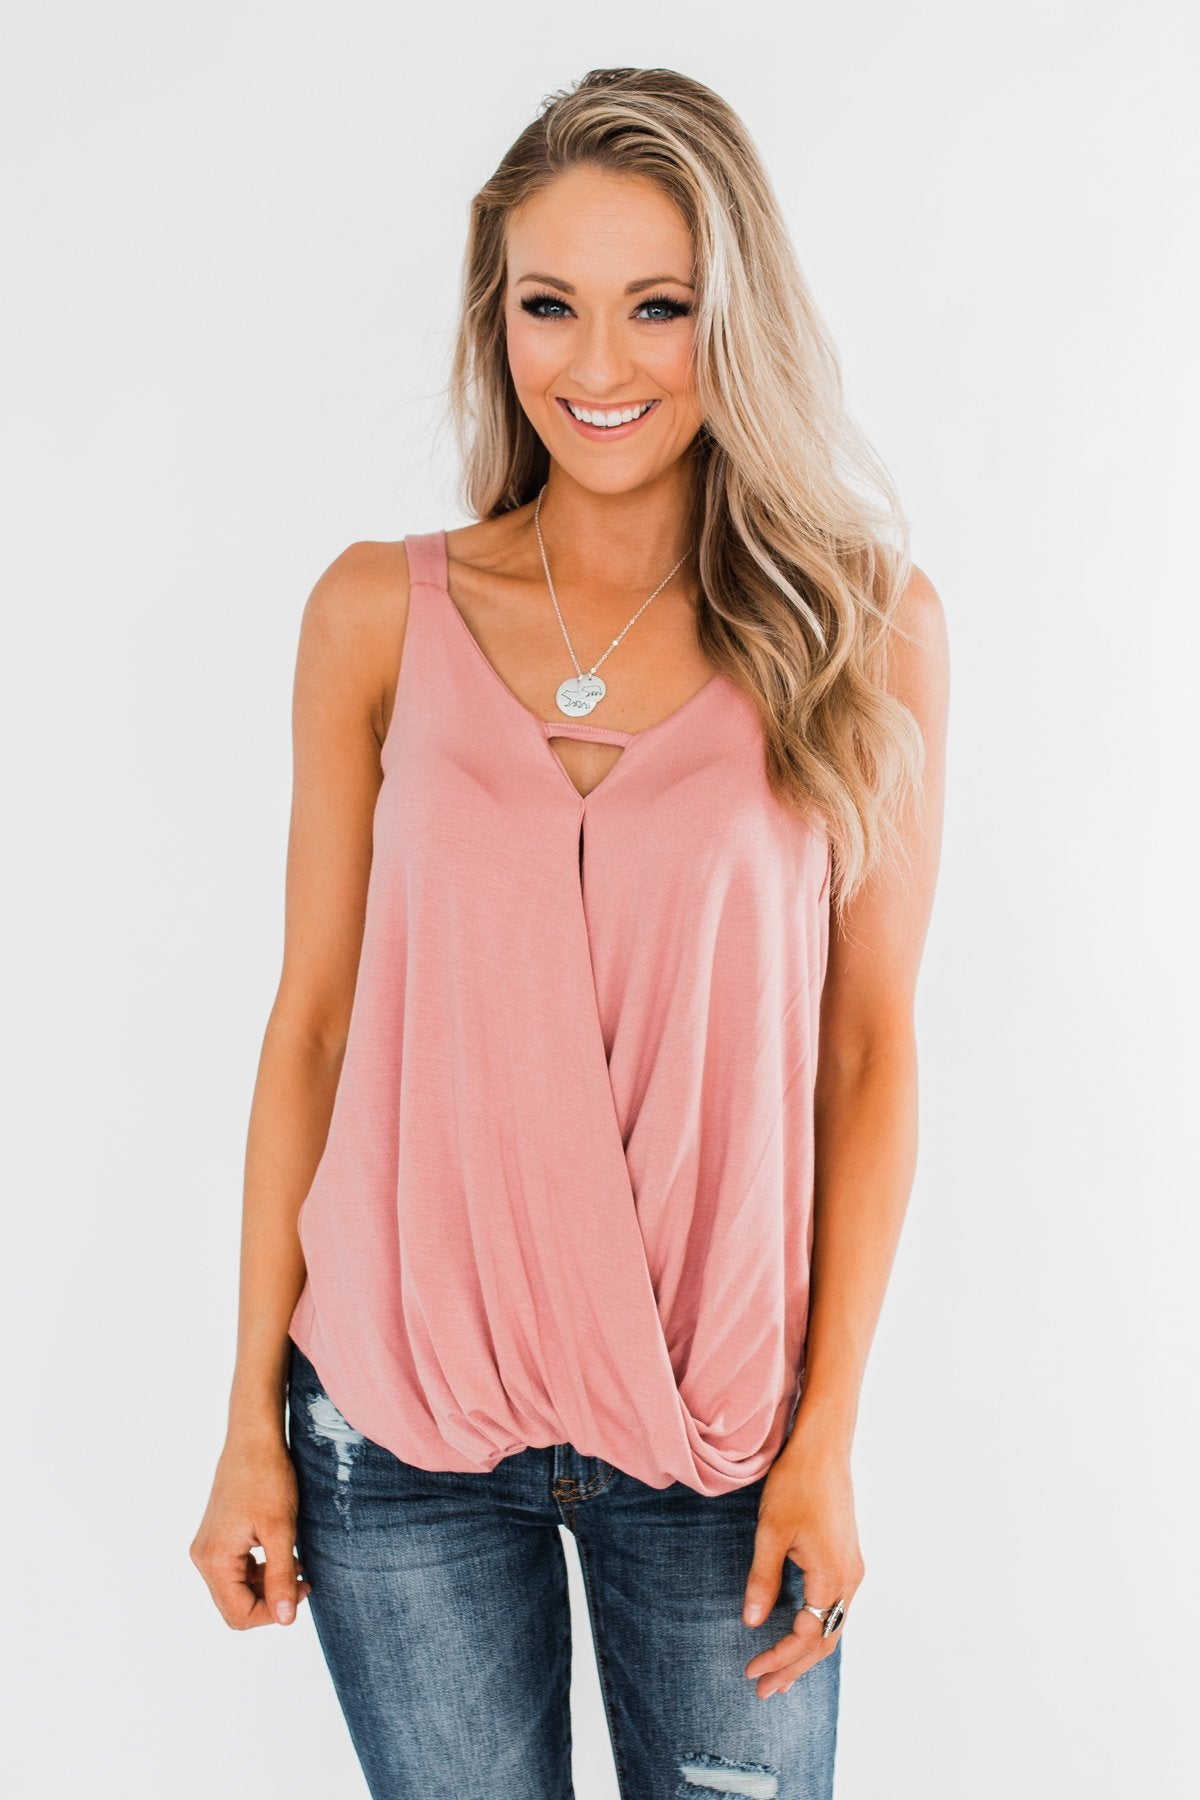 Wrapped Up In Sweetness Tank Top- Blush